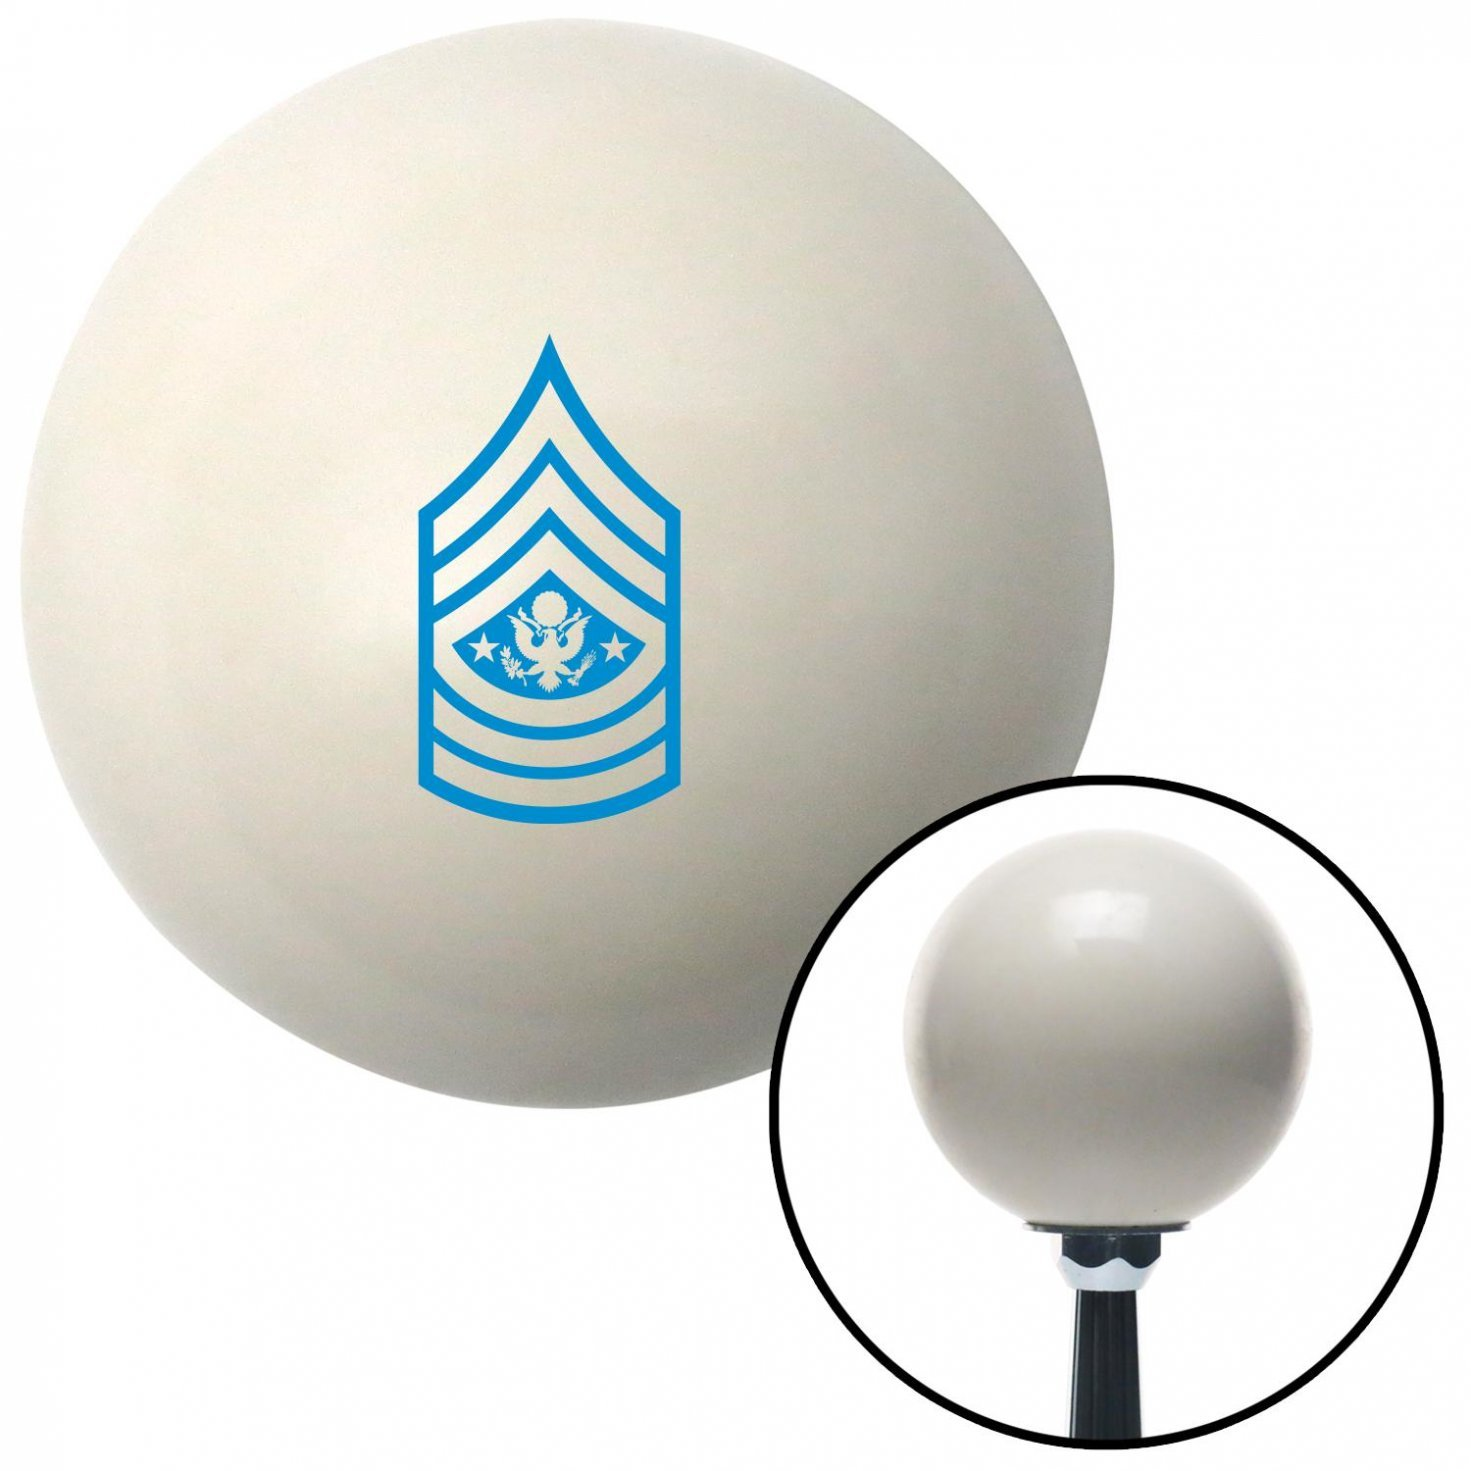 Blue Sergeant Major of The Army American Shifter 40492 Ivory Shift Knob with 16mm x 1.5 Insert